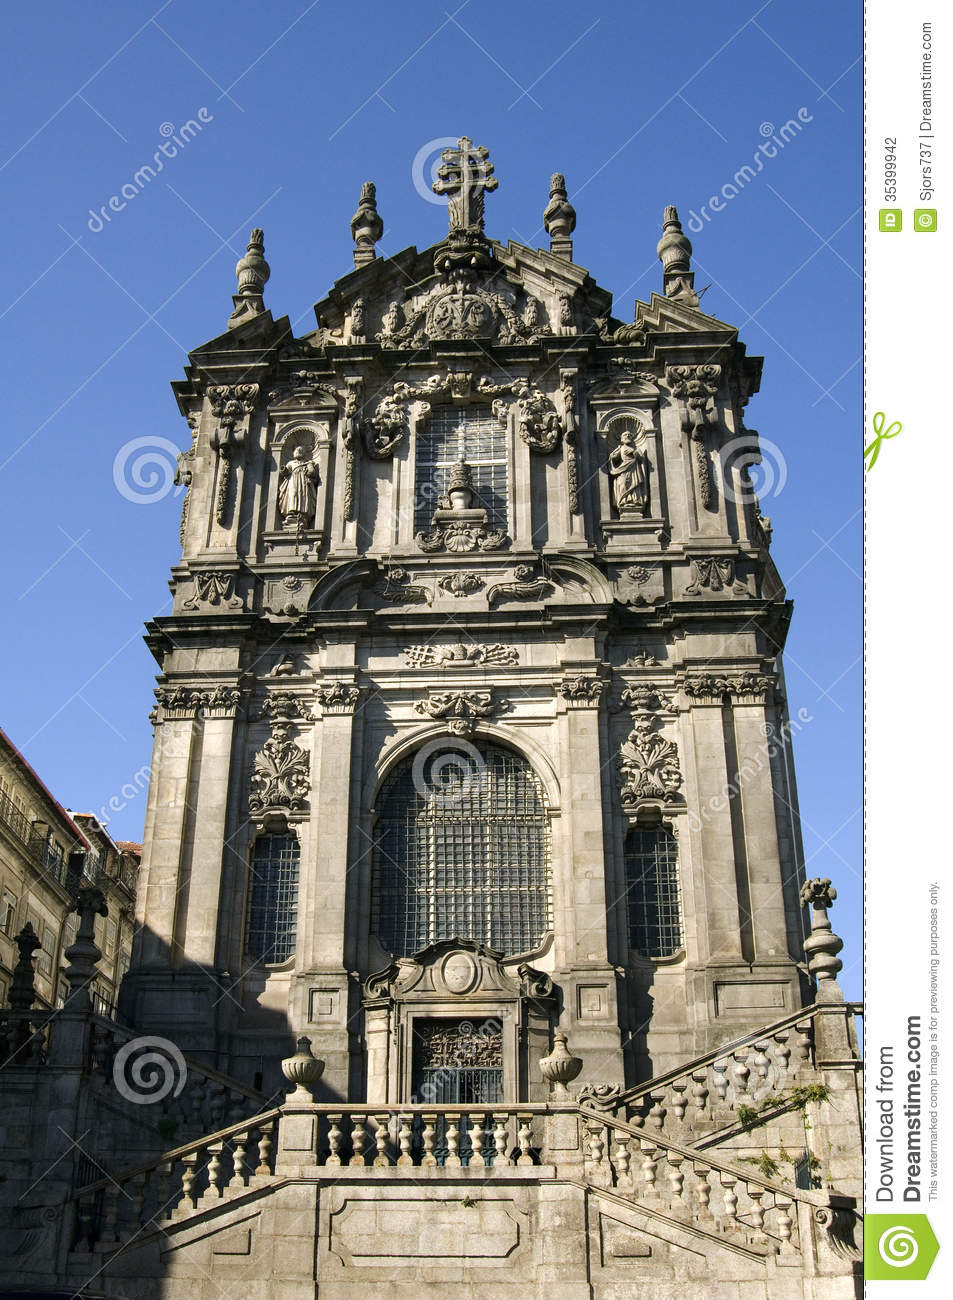 Baroque Facade Of The Clérigos Church, City Porto, Portugal Stock Photography...